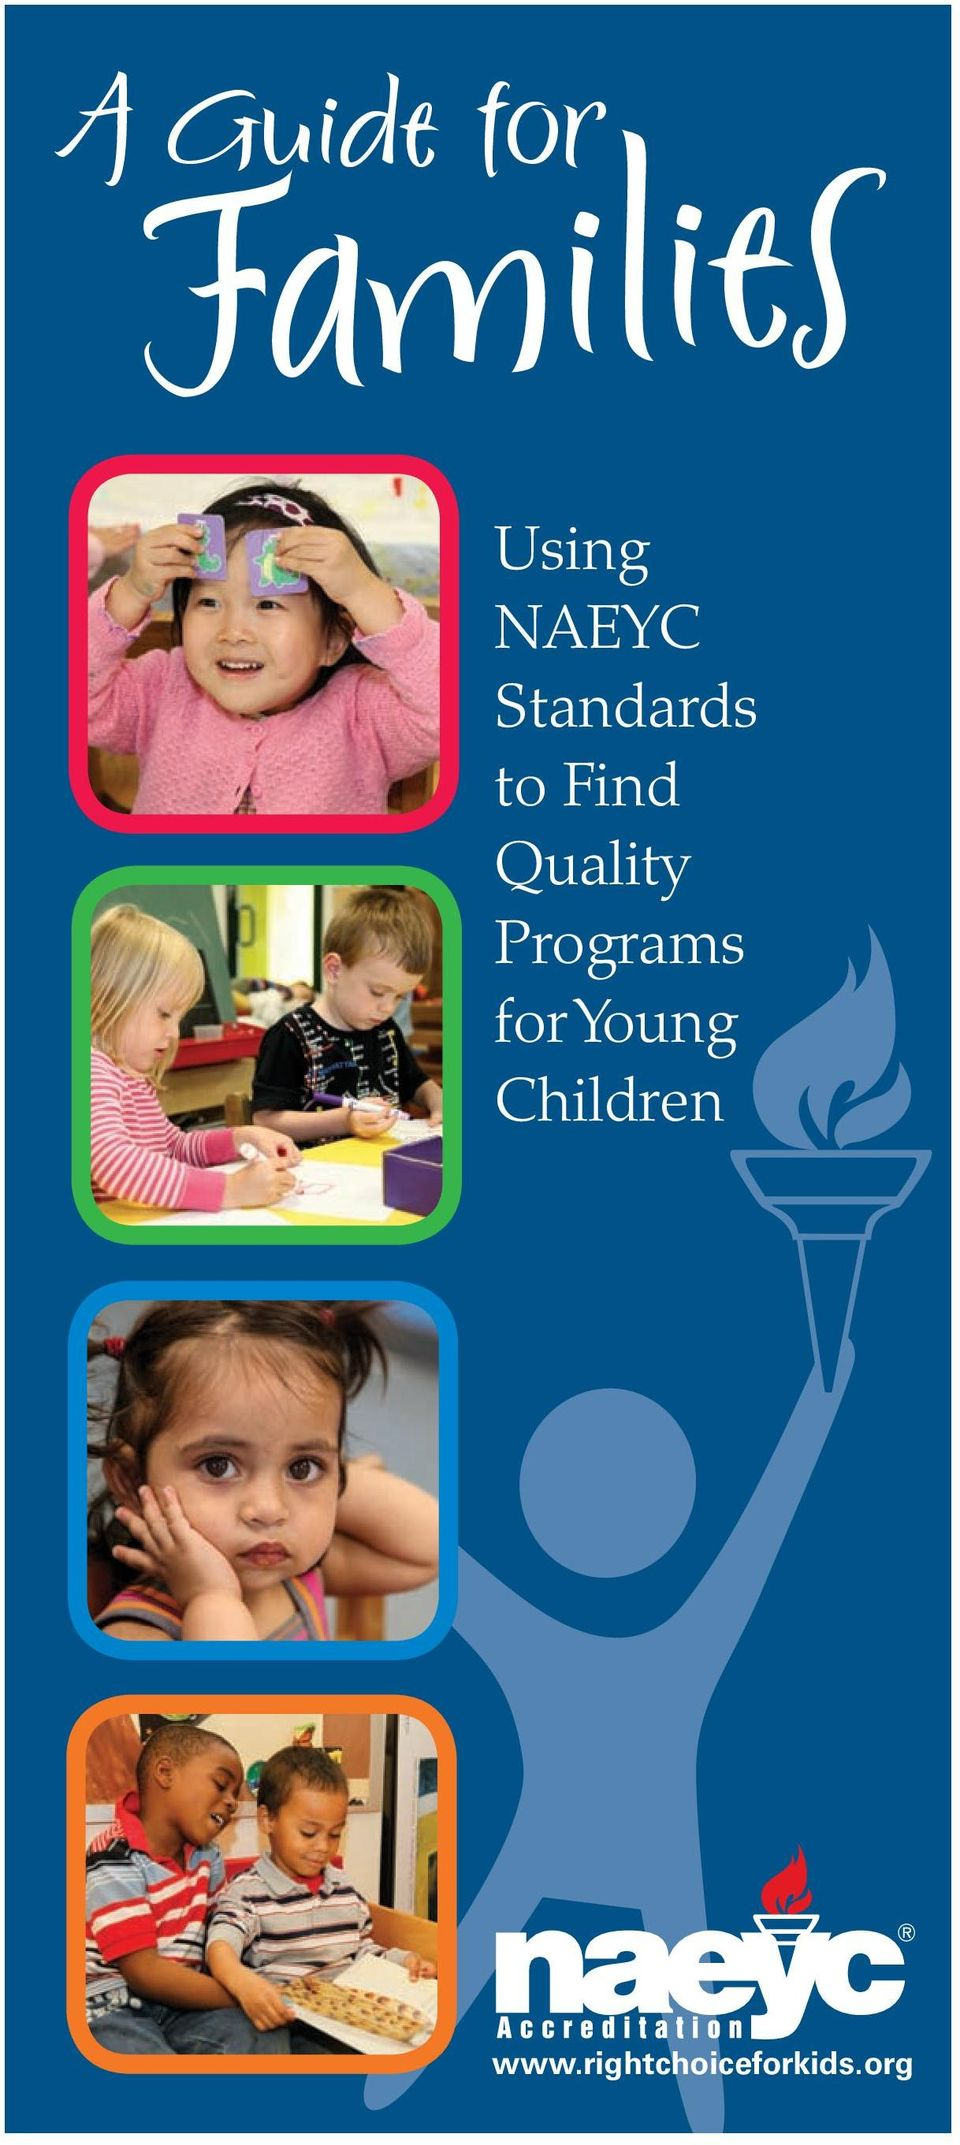 Quality Programs for Young